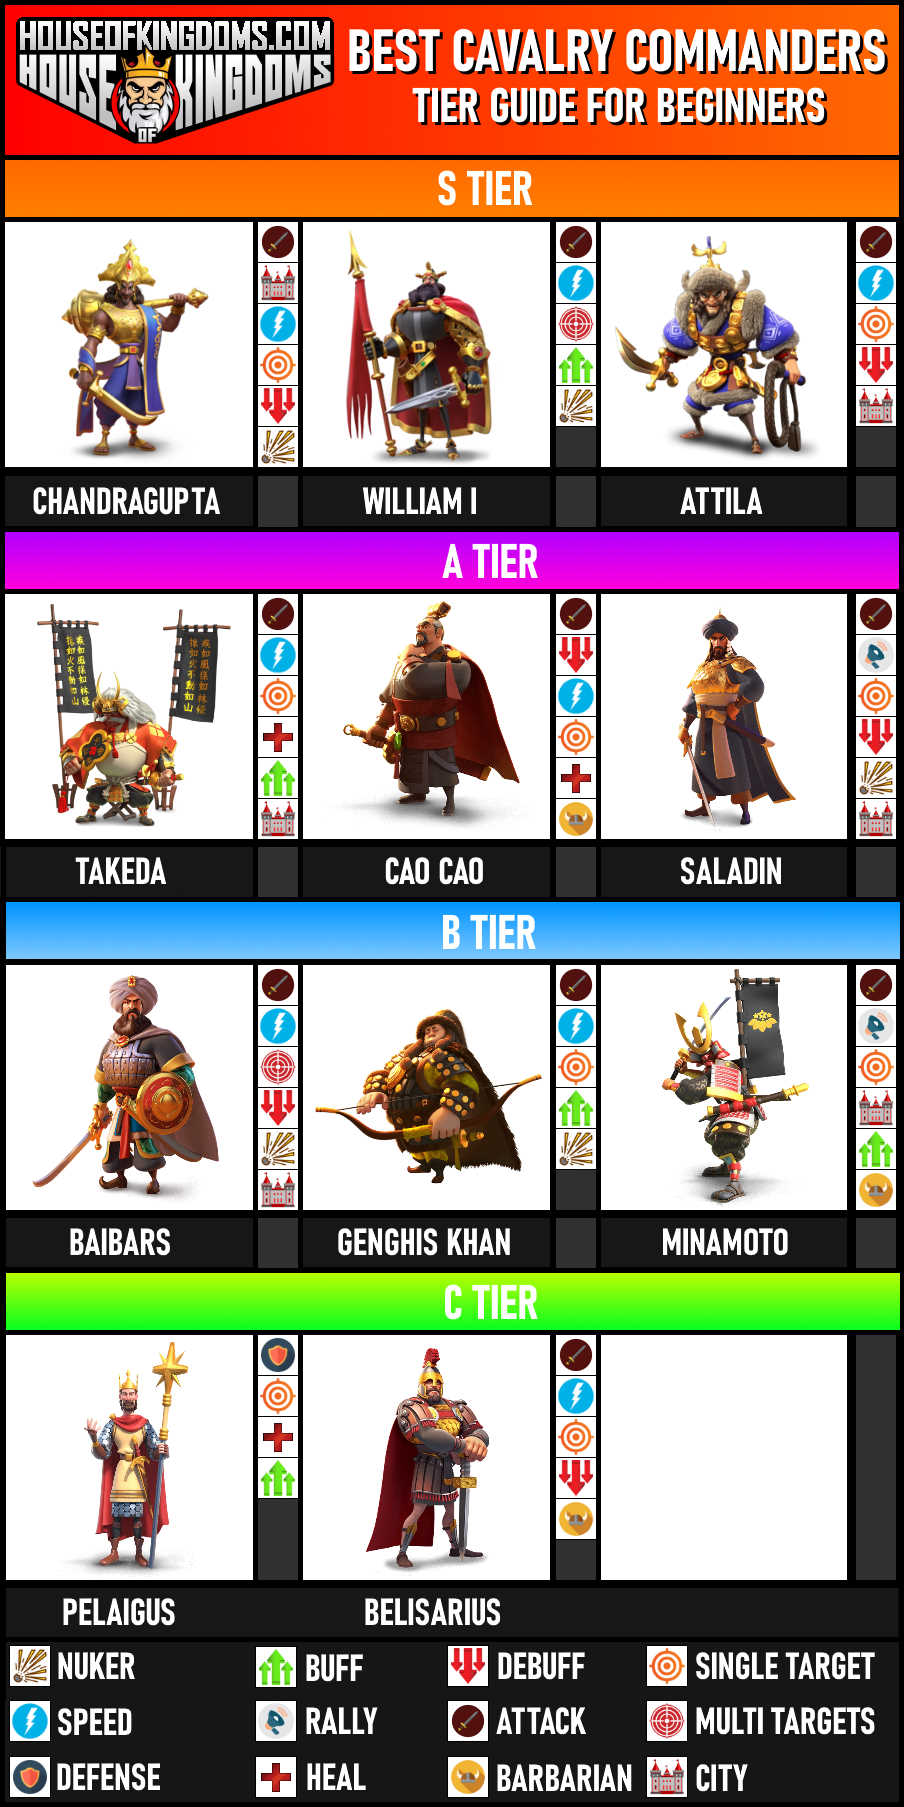 Best Cavalry Commanders Tier List ROK Guide